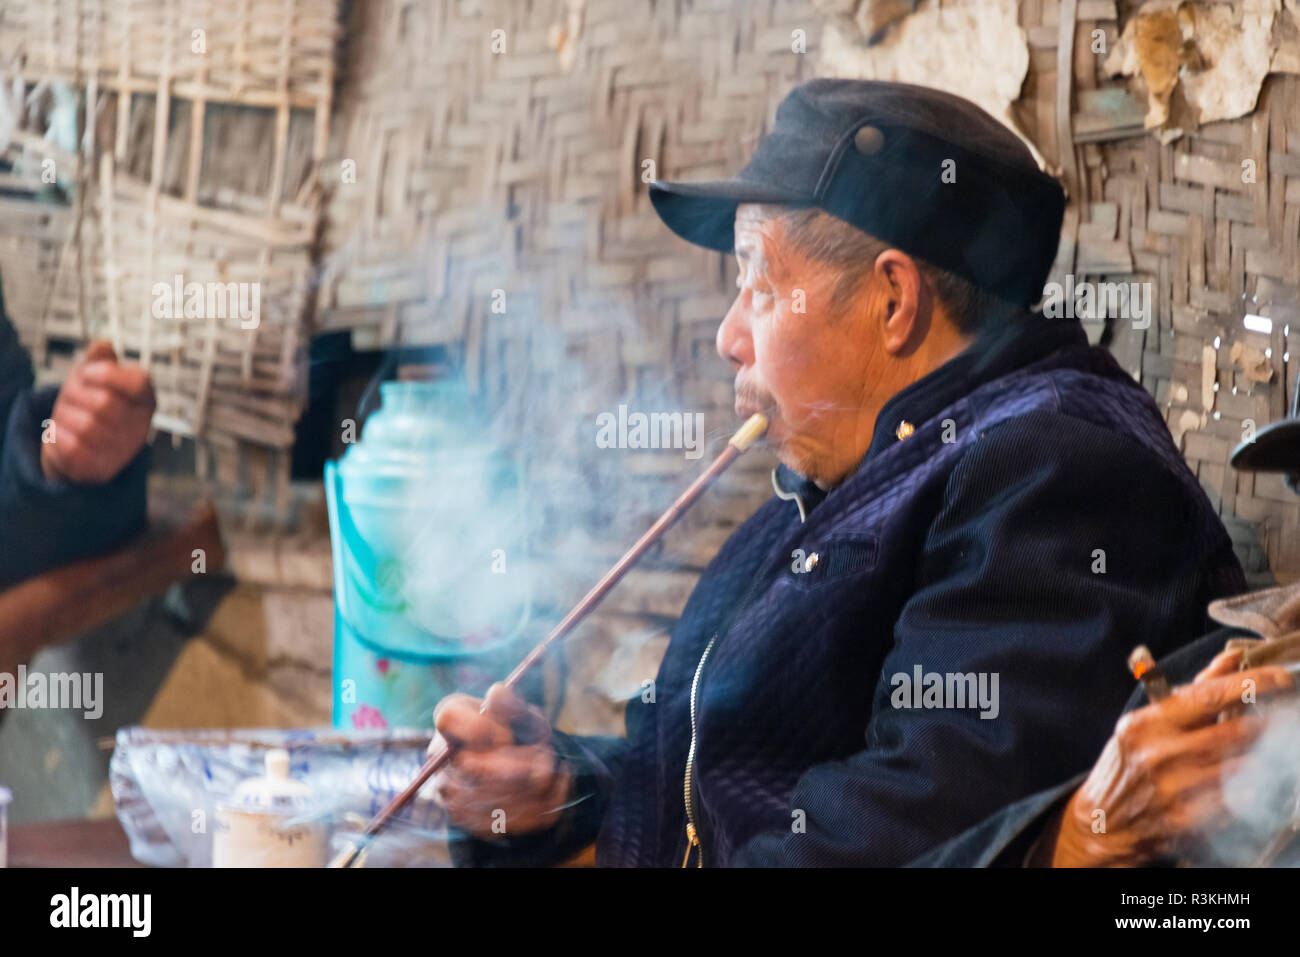 34921671a Old man smoking a pipe at an old teahouse, Pengzhen, Chengdu, Sichuan  Province, China